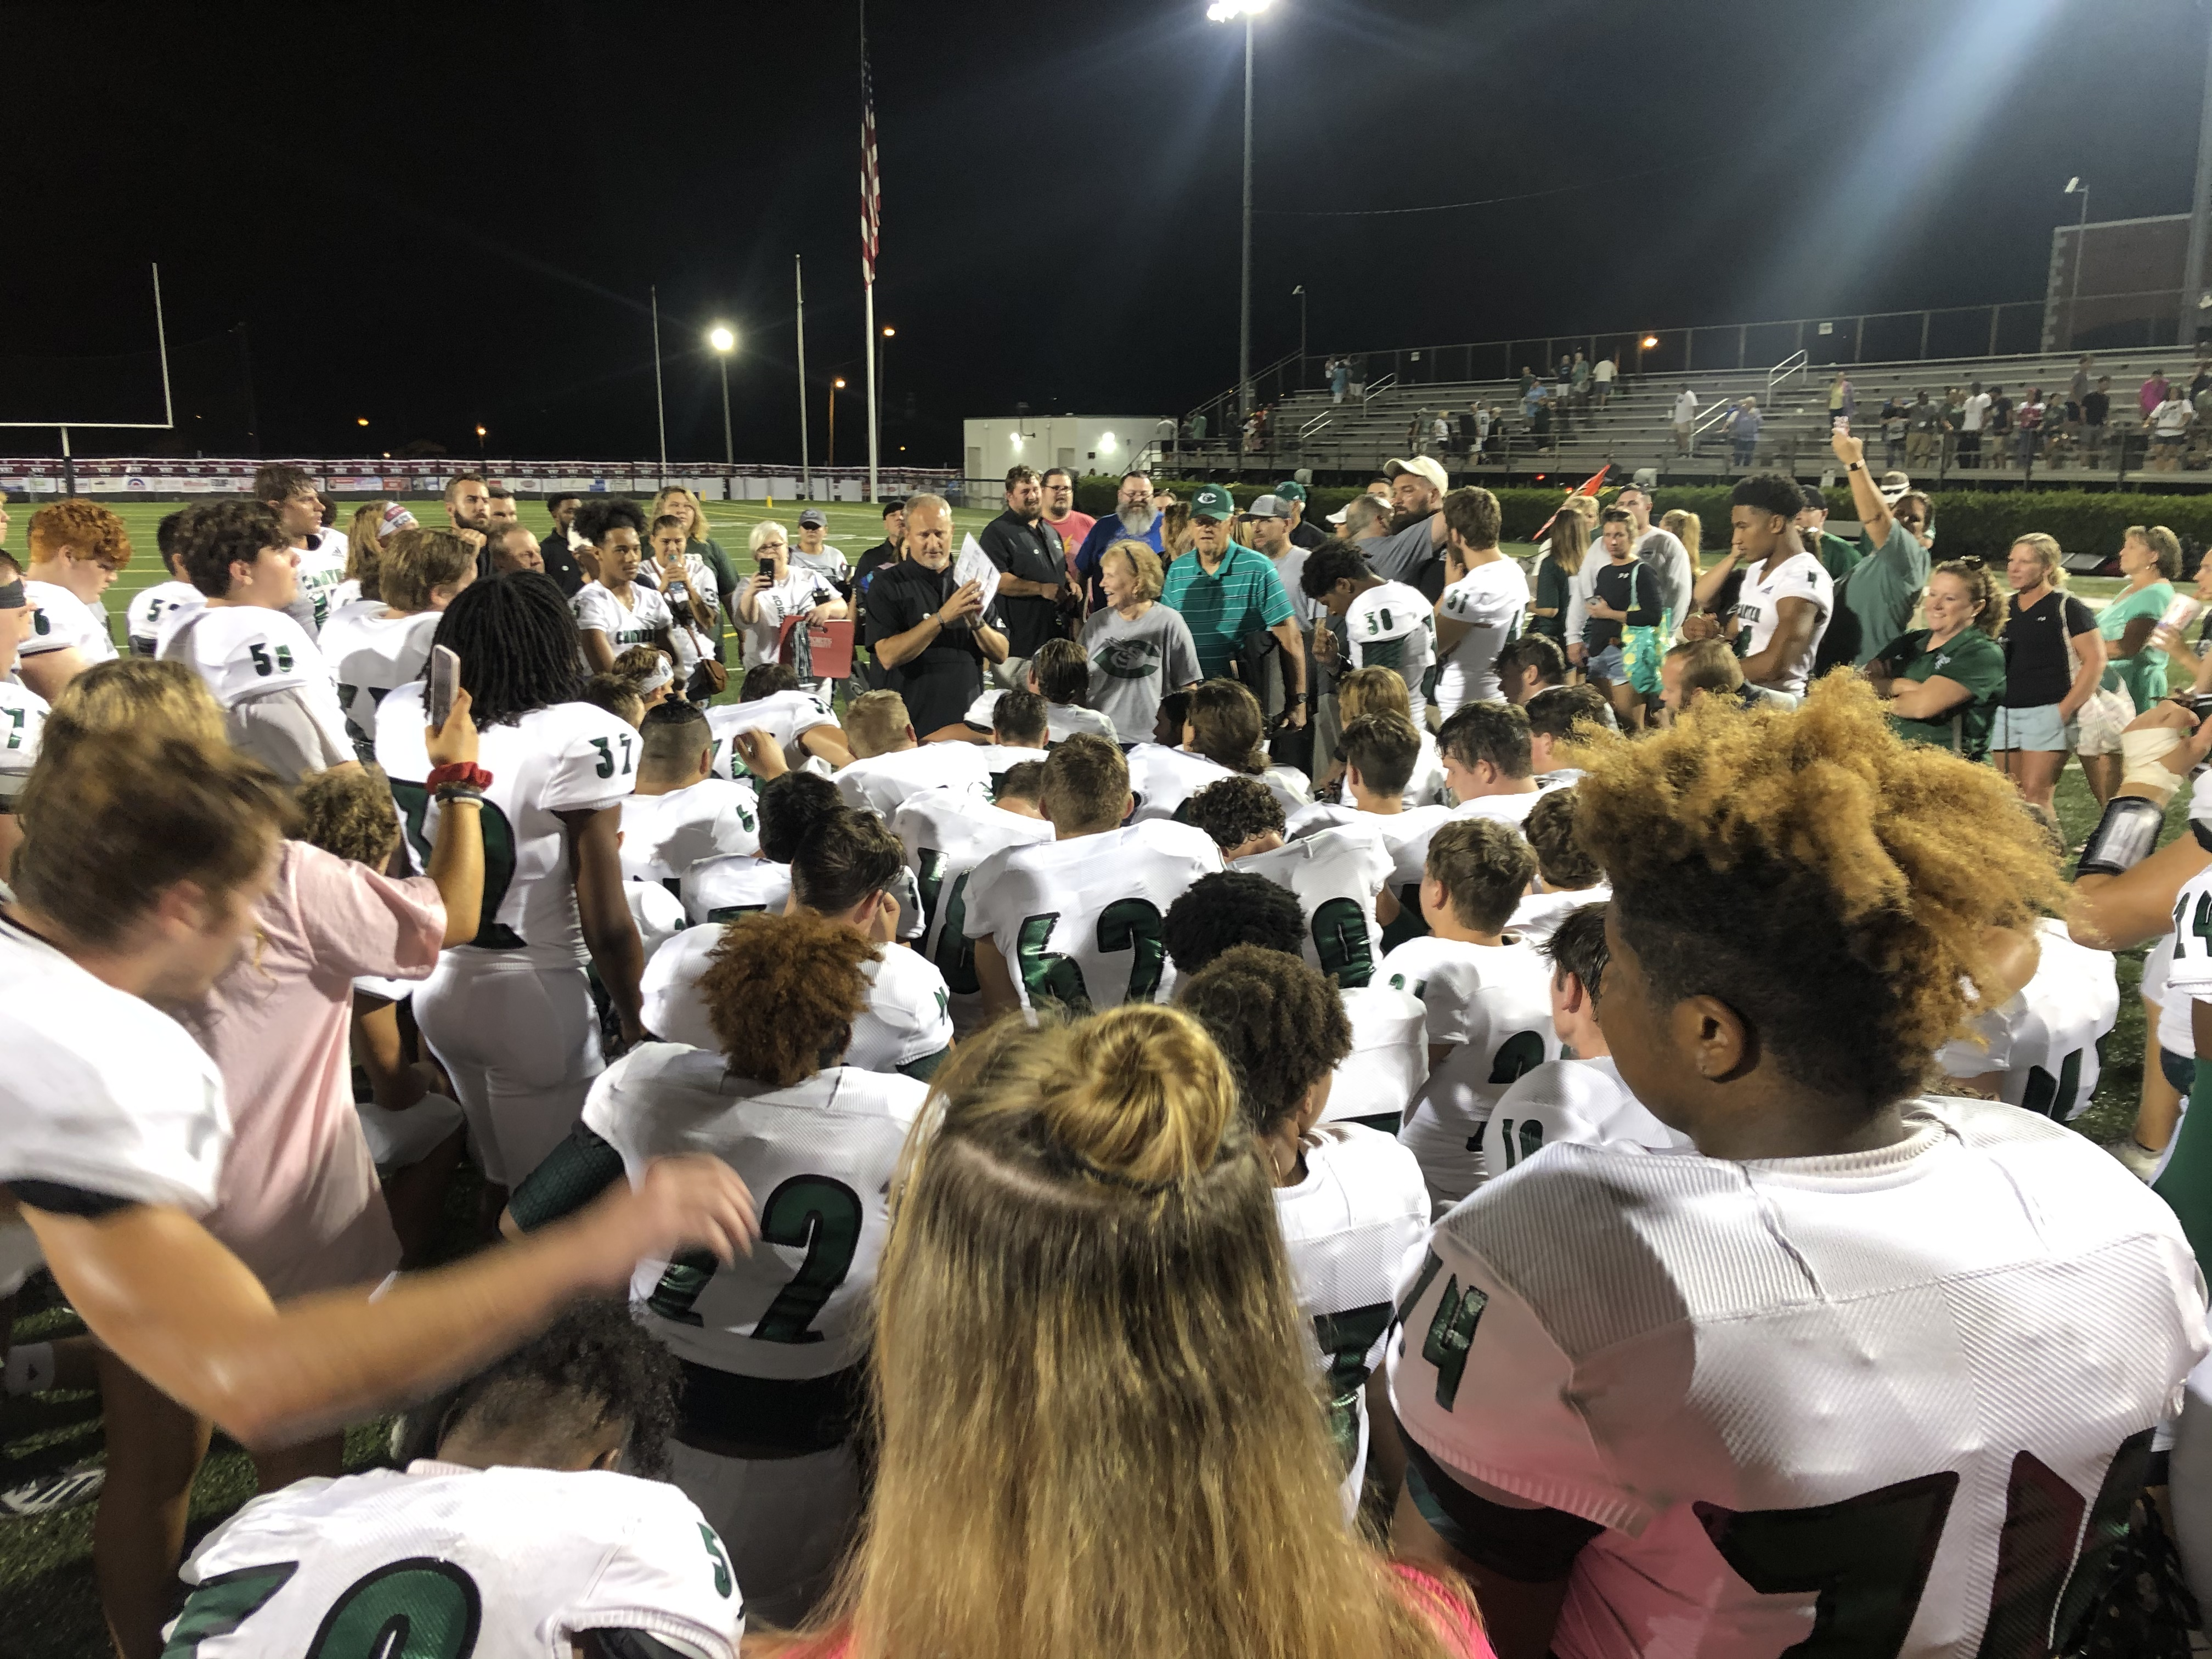 Recap: The Morristown Miracle…Hornets erase a 21 point 4th Quarter deficit to shock Morristown West 27-21 in OT